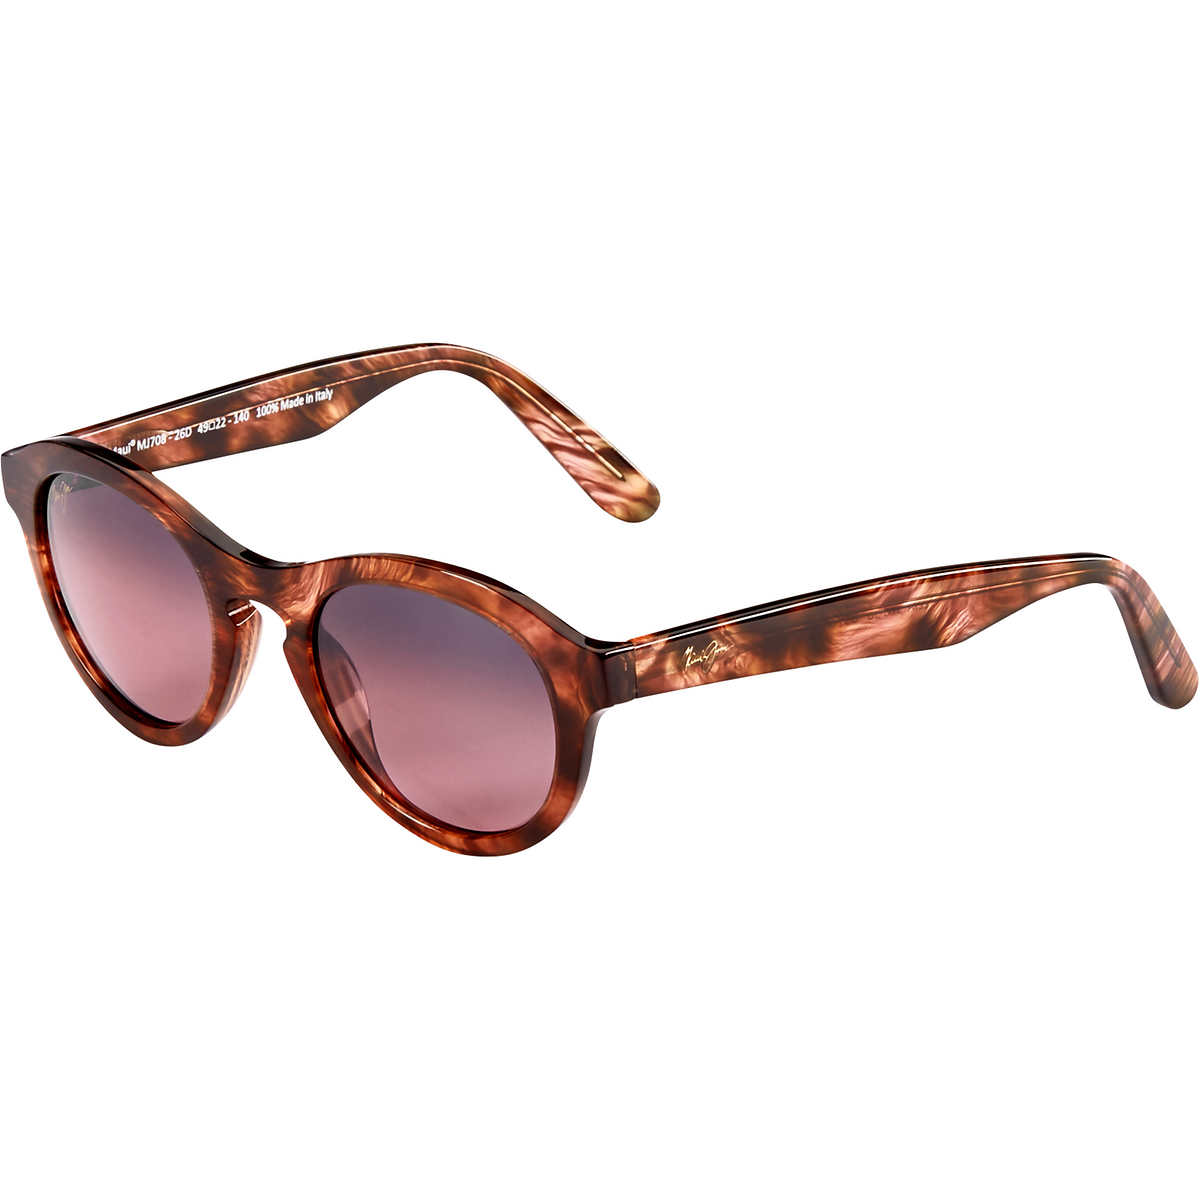 Maui Jim RS708-26D Leia Sunglasses Brown Feathered w/Maui Rose RS708 26D 49mm Authentic